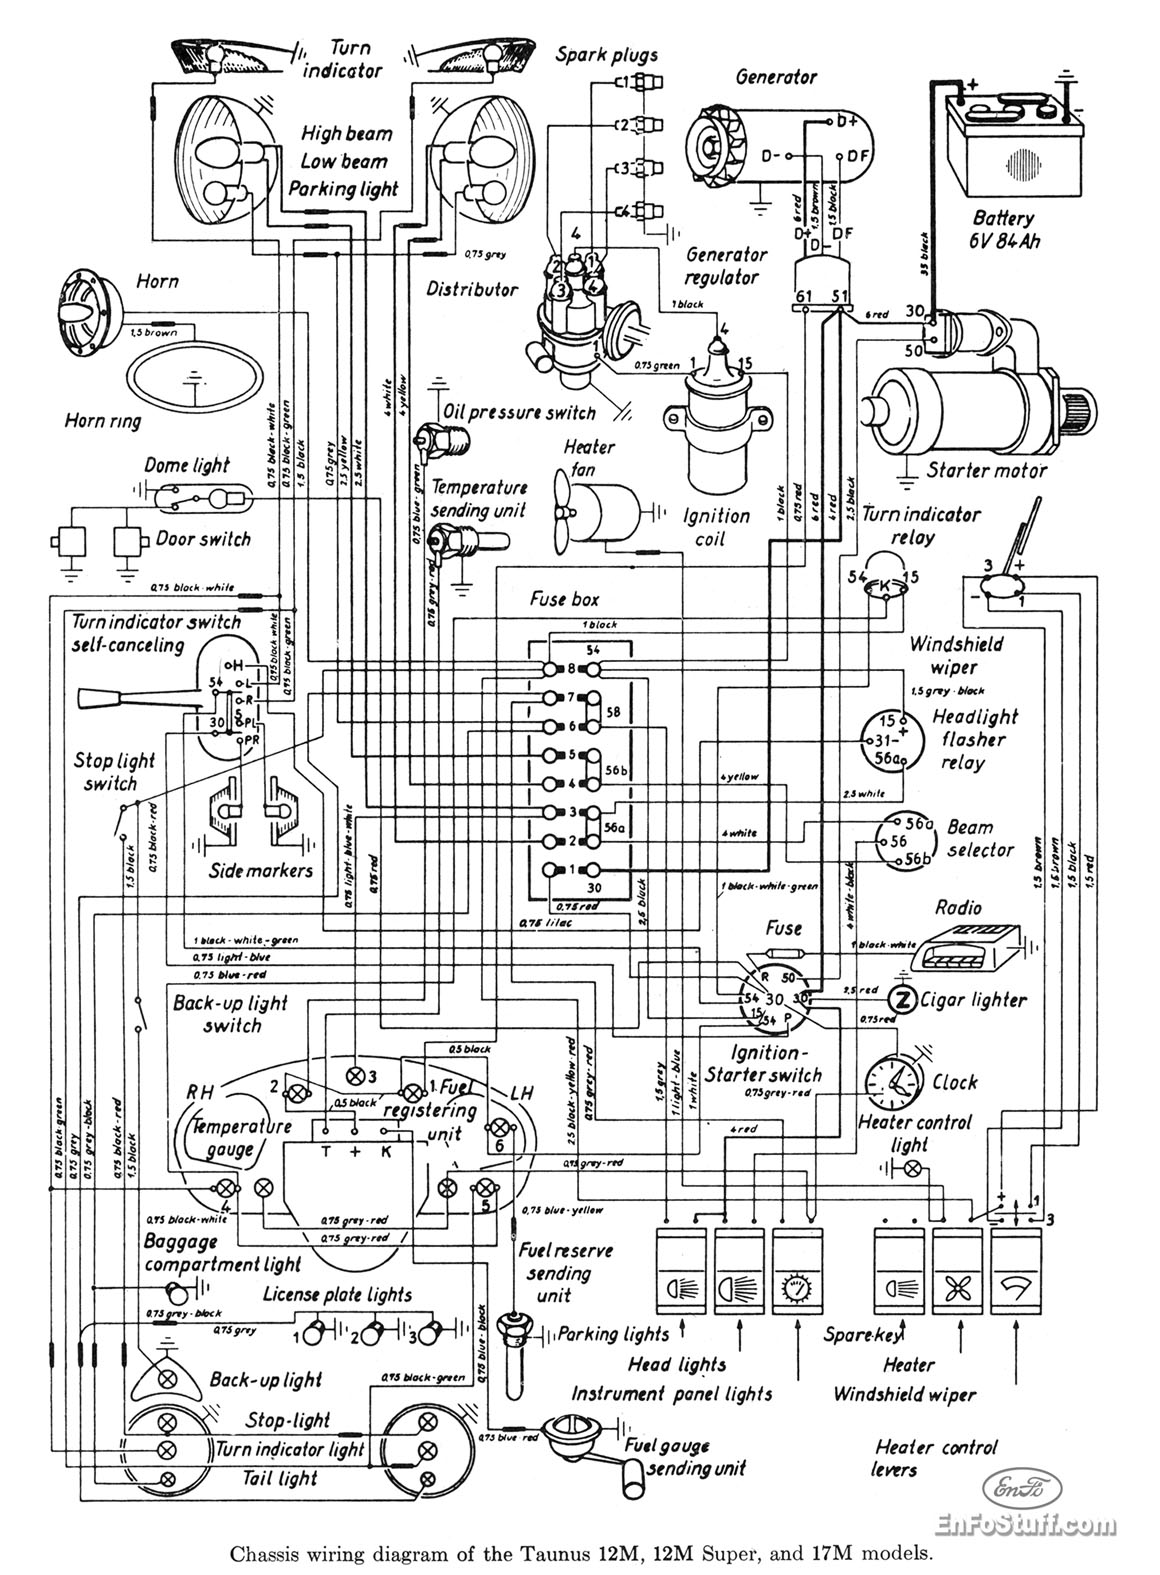 ford taunus 12m 17m wiring diagram wiring diagram for taunus 12m, 12m super, and 17m models saturn l200 fuel pump wiring diagram at bakdesigns.co